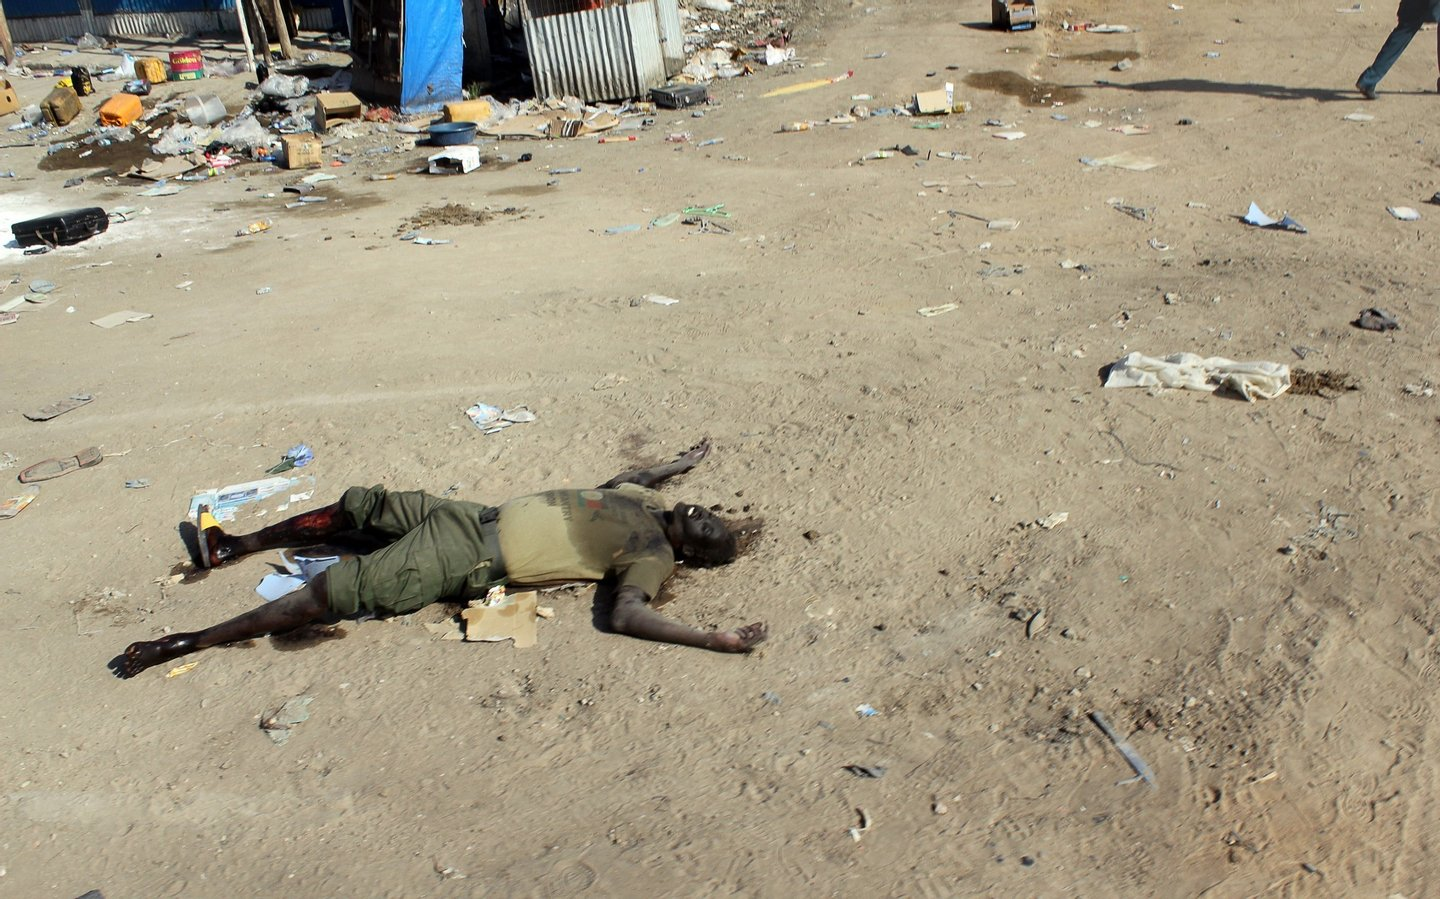 The body of a man claimed to be a rebel lies on the ground in the market in the centre of Bor, some 200 kilometres (125 miles) north of the capital Juba, on December 25, 2013. South Sudan's army stormed the rebel-held town of Bor on December 24, sending insurgents fleeing nearly a week after they captured the state capital of South Sudan's power-key eastern state of Jonglei. AFP PHOTO / WAAKHE SIMON WUDU (Photo credit should read WAAKHE SIMON WUDU/AFP/Getty Images)